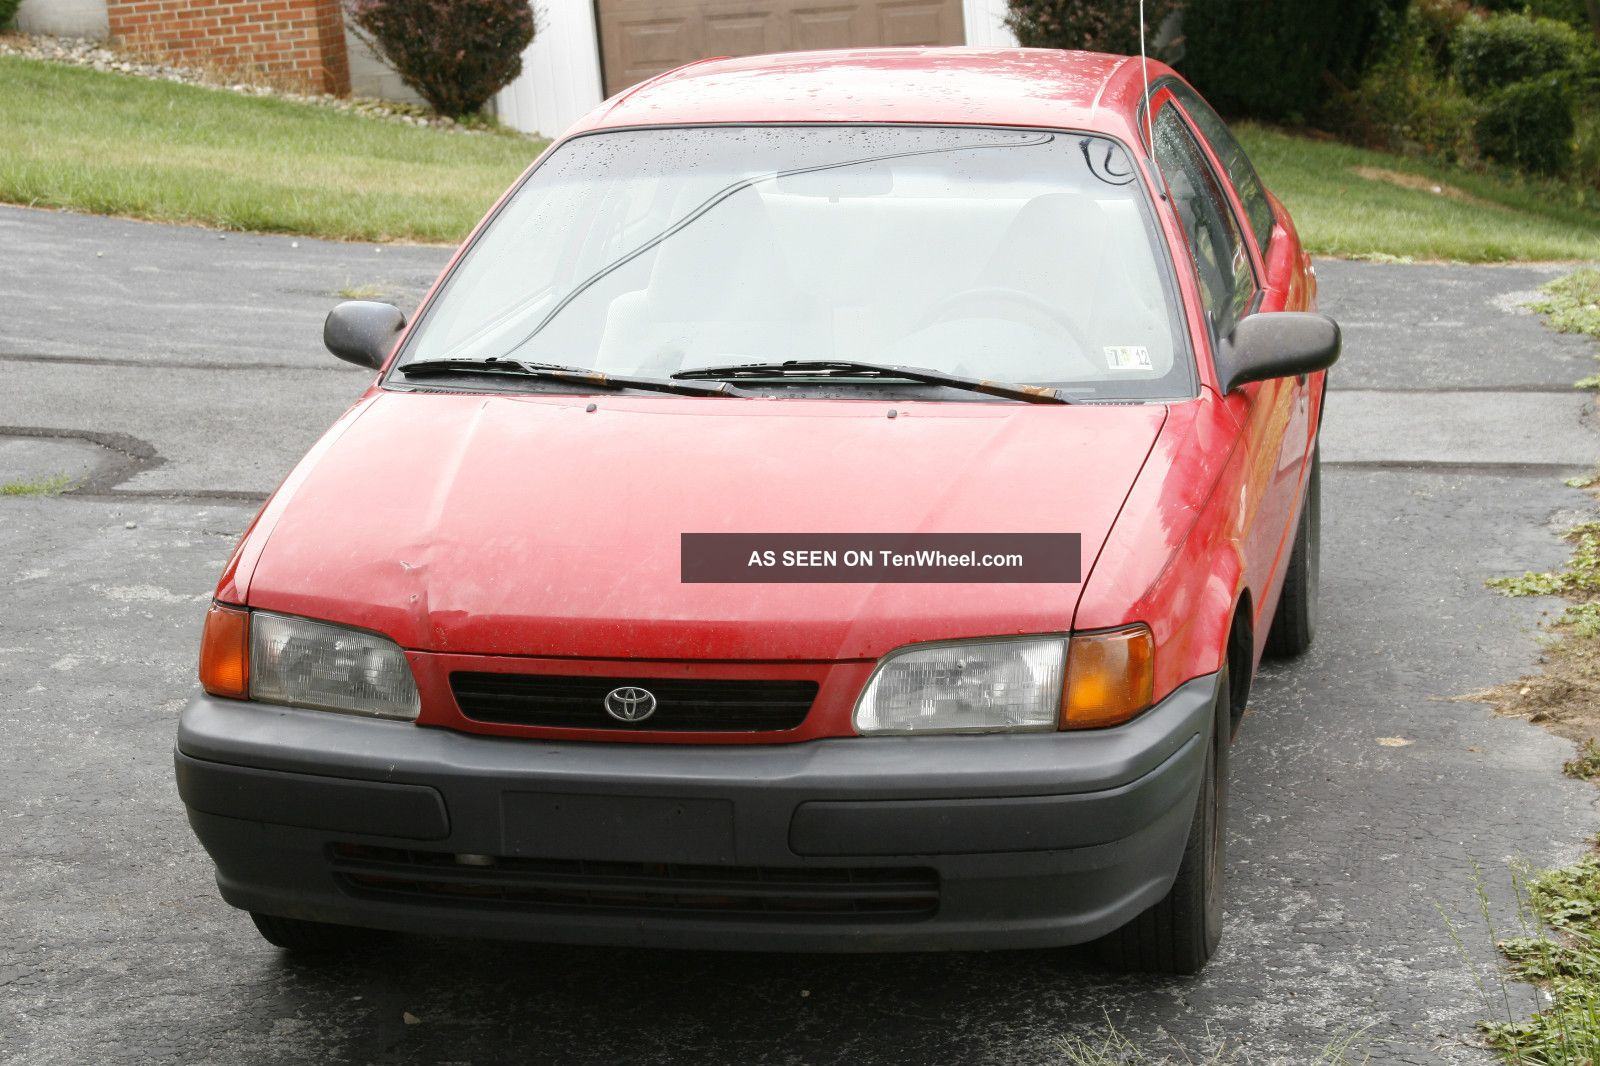 1996 toyota tercel 35 mpg automatic needs engine work tenwheel